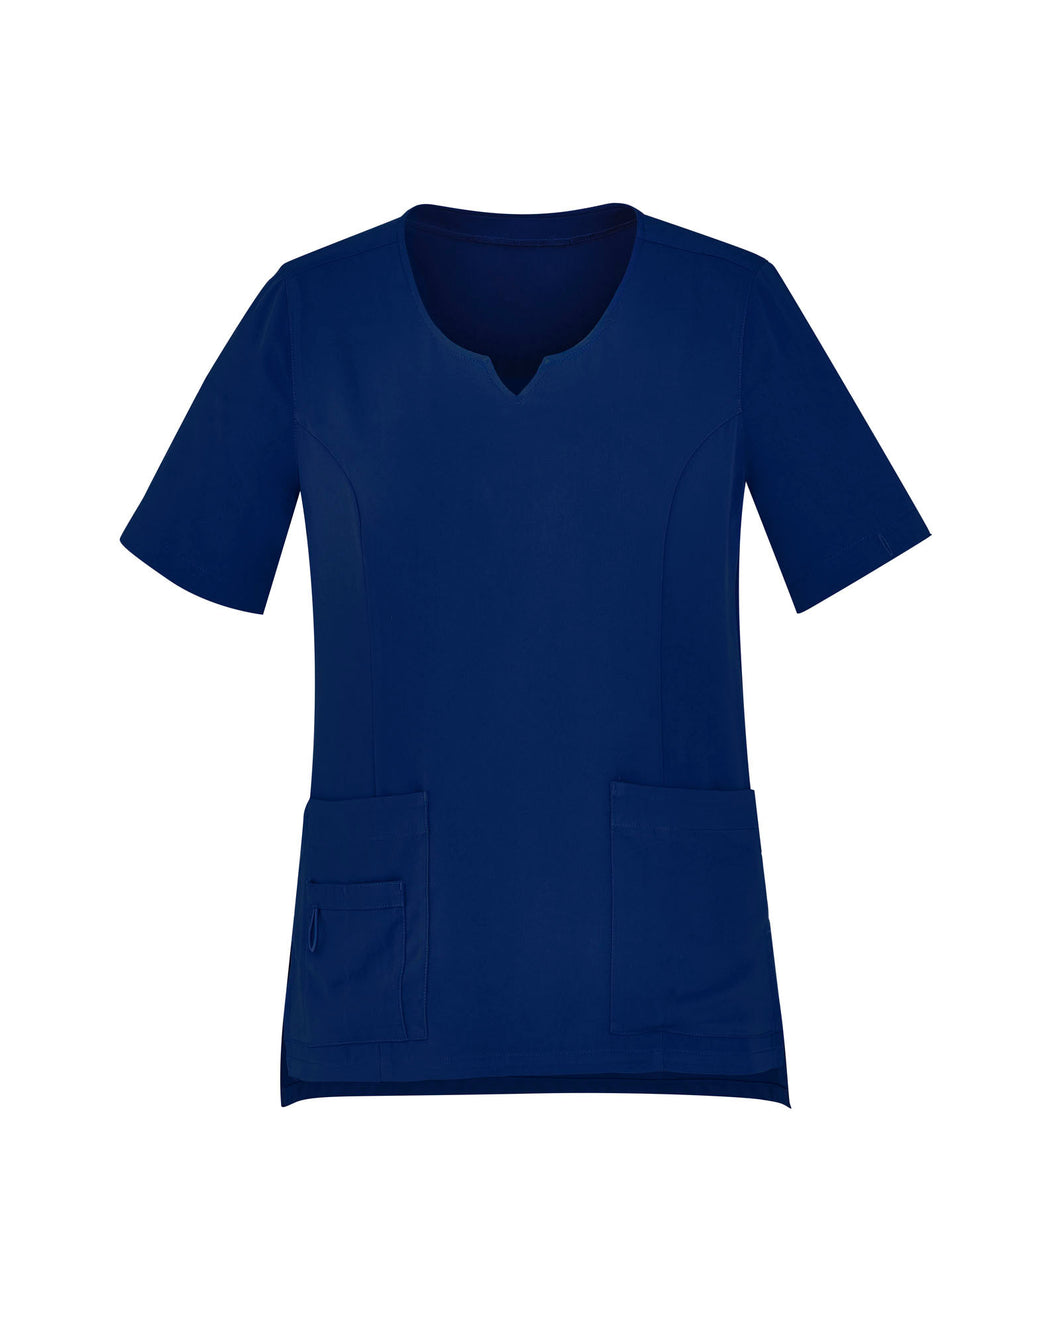 WOMEN'S TAILORED FIT ROUND NECK SCRUBS TOP - CST942LS